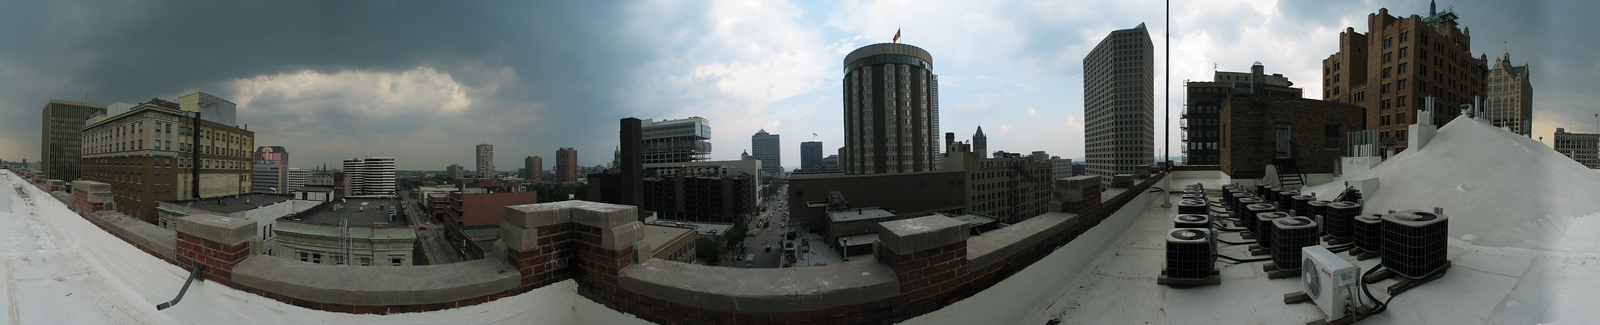 2003-07-30 Panoramas of Milwaukee